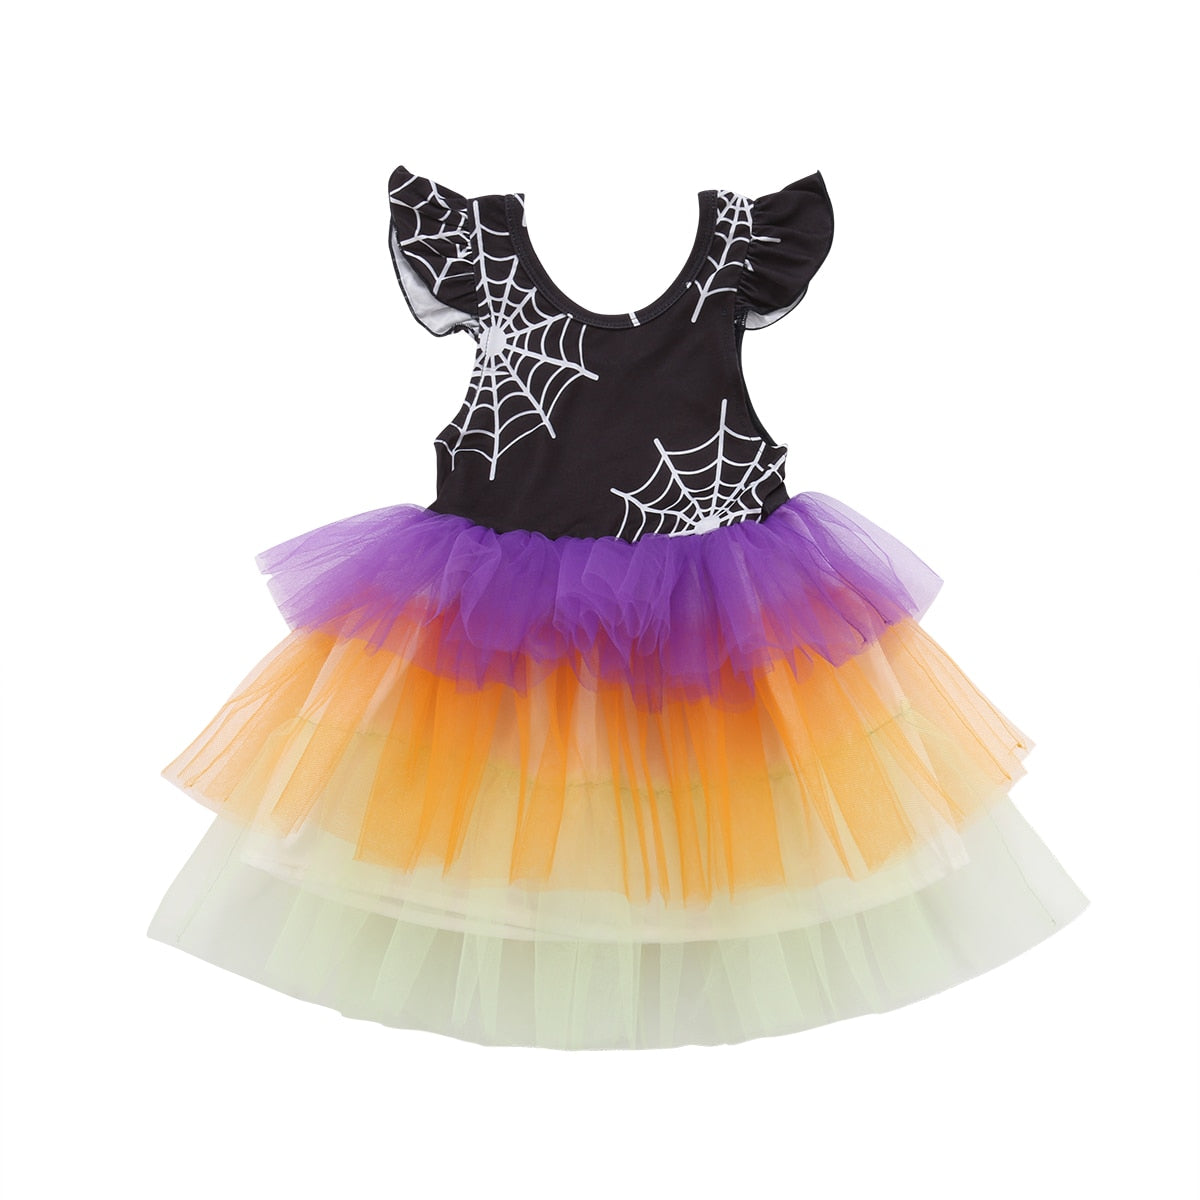 Infant Baby Girls Halloween Spiderweb Tulle Dress Princess Girls Dress Clothes Costume 1-6Y